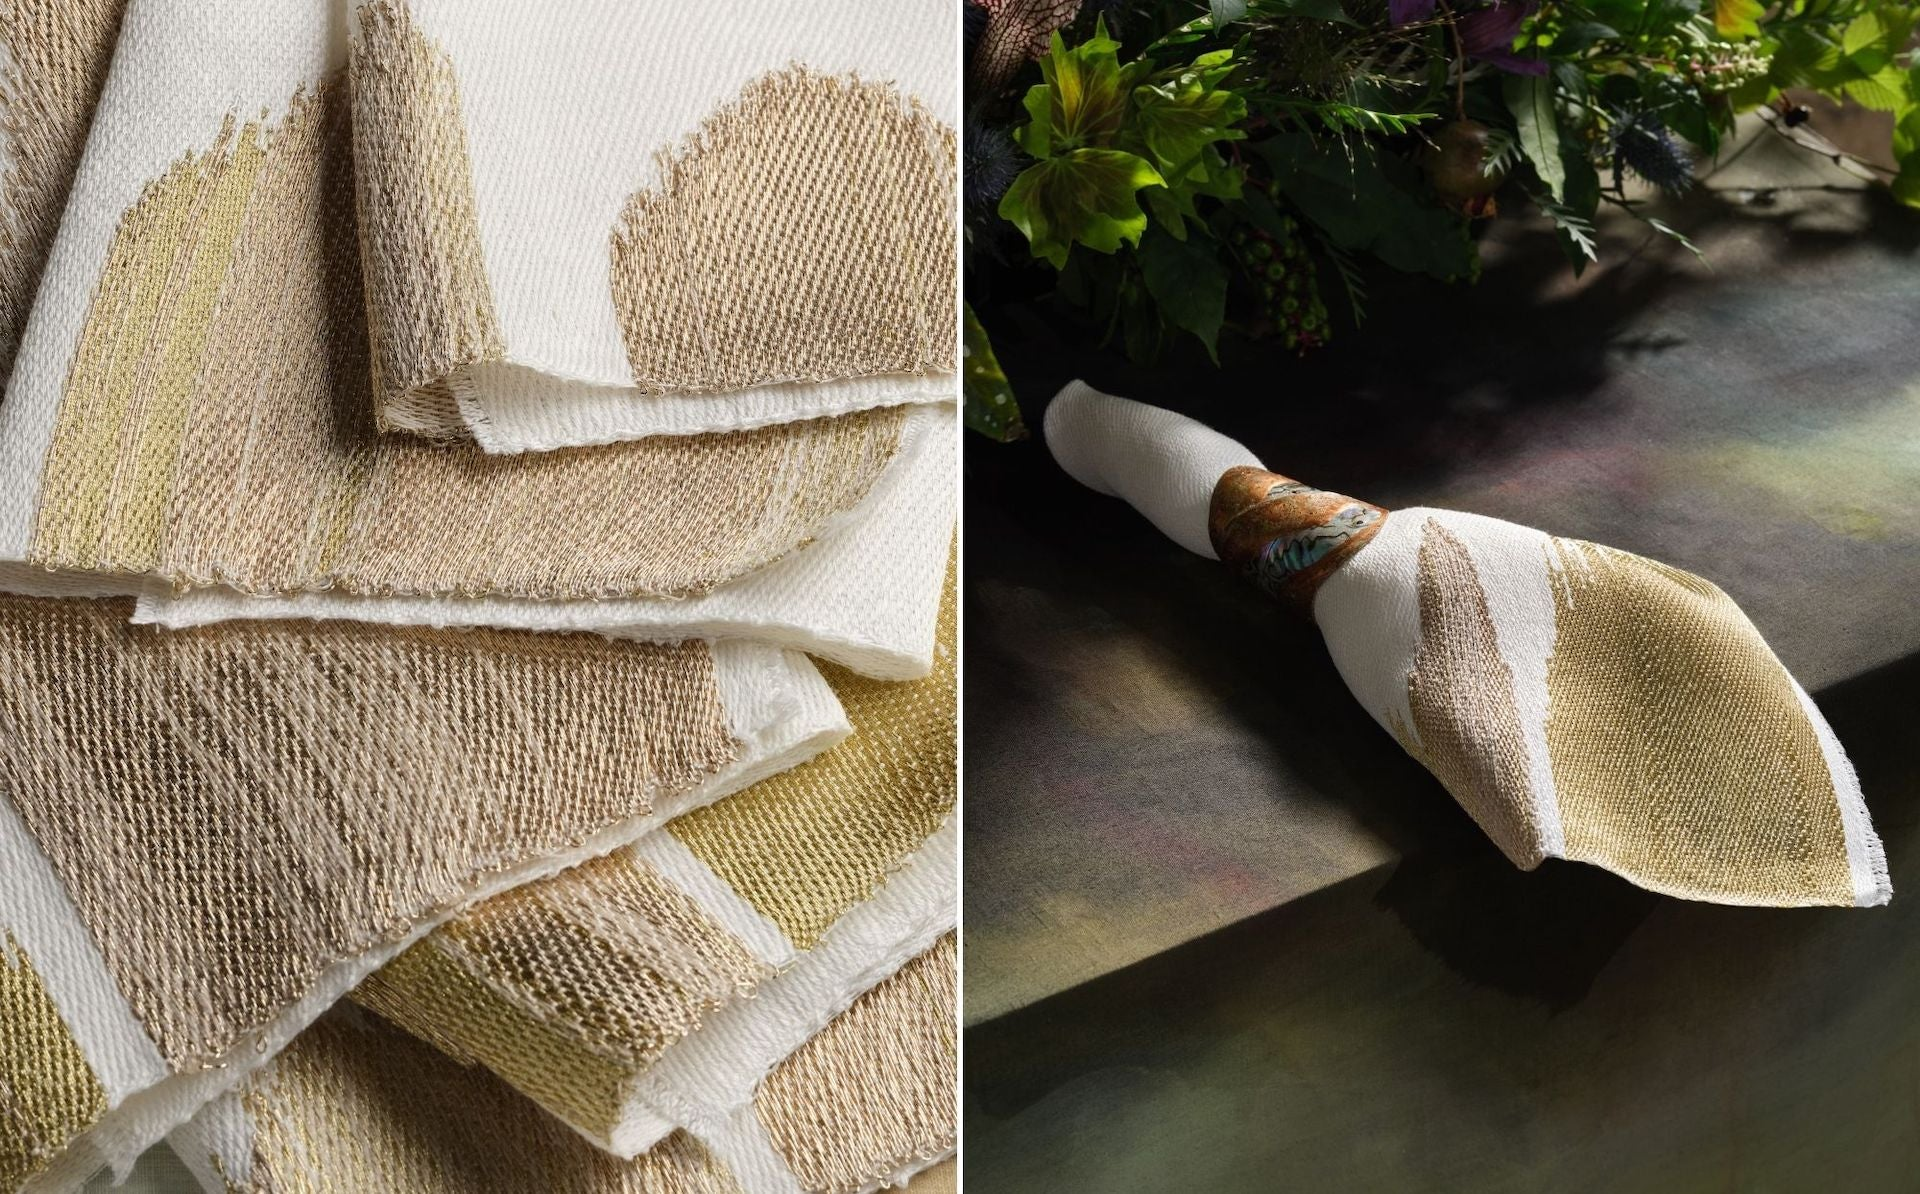 Linen and Metallics Napkins by Hiroko Takeda for The Feast. Photos © DM/BX